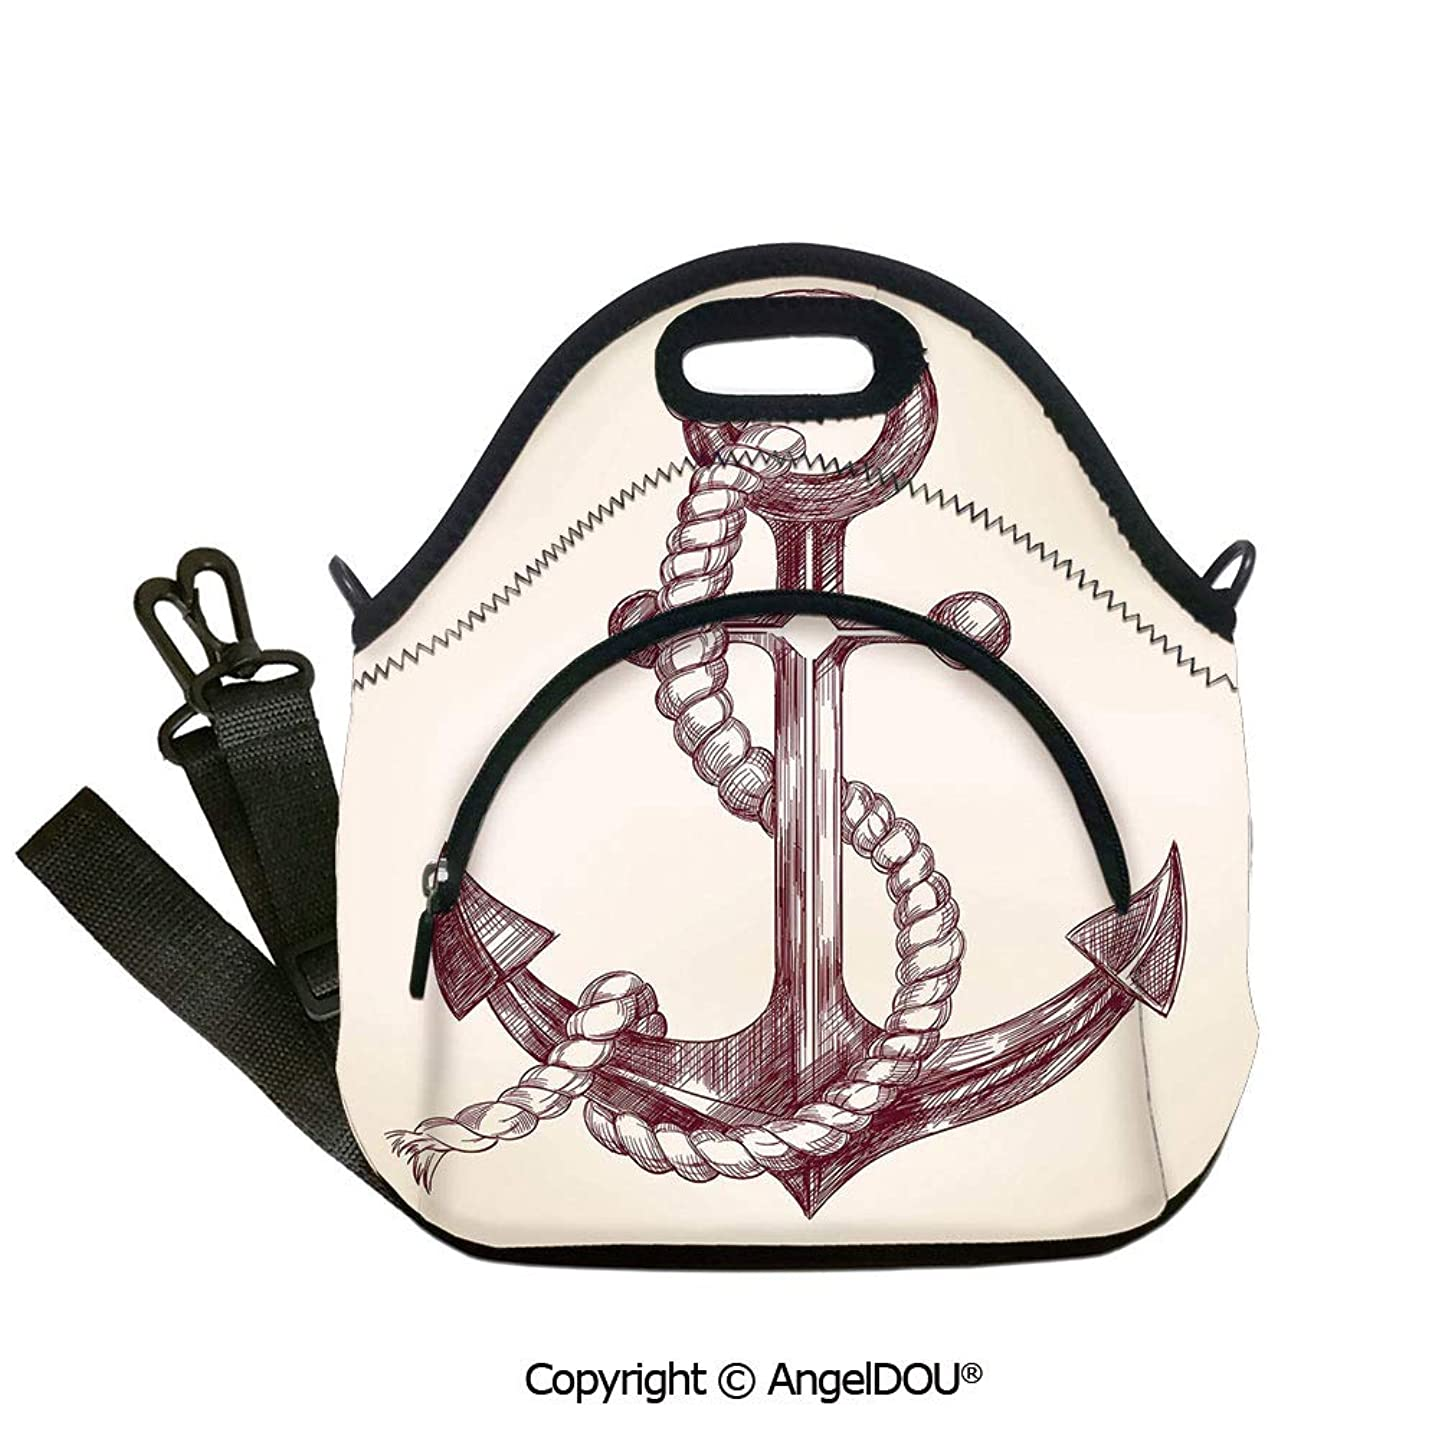 AngelDOU Anchor Fashoniable Work Lunch Bags Realistic Hand Drawn Sketch Marine Vintage Design Sails Yacht Boat Cruise Decorative for women Portable Insulated lunch box bag.12.6x12.6x6.3(inch)